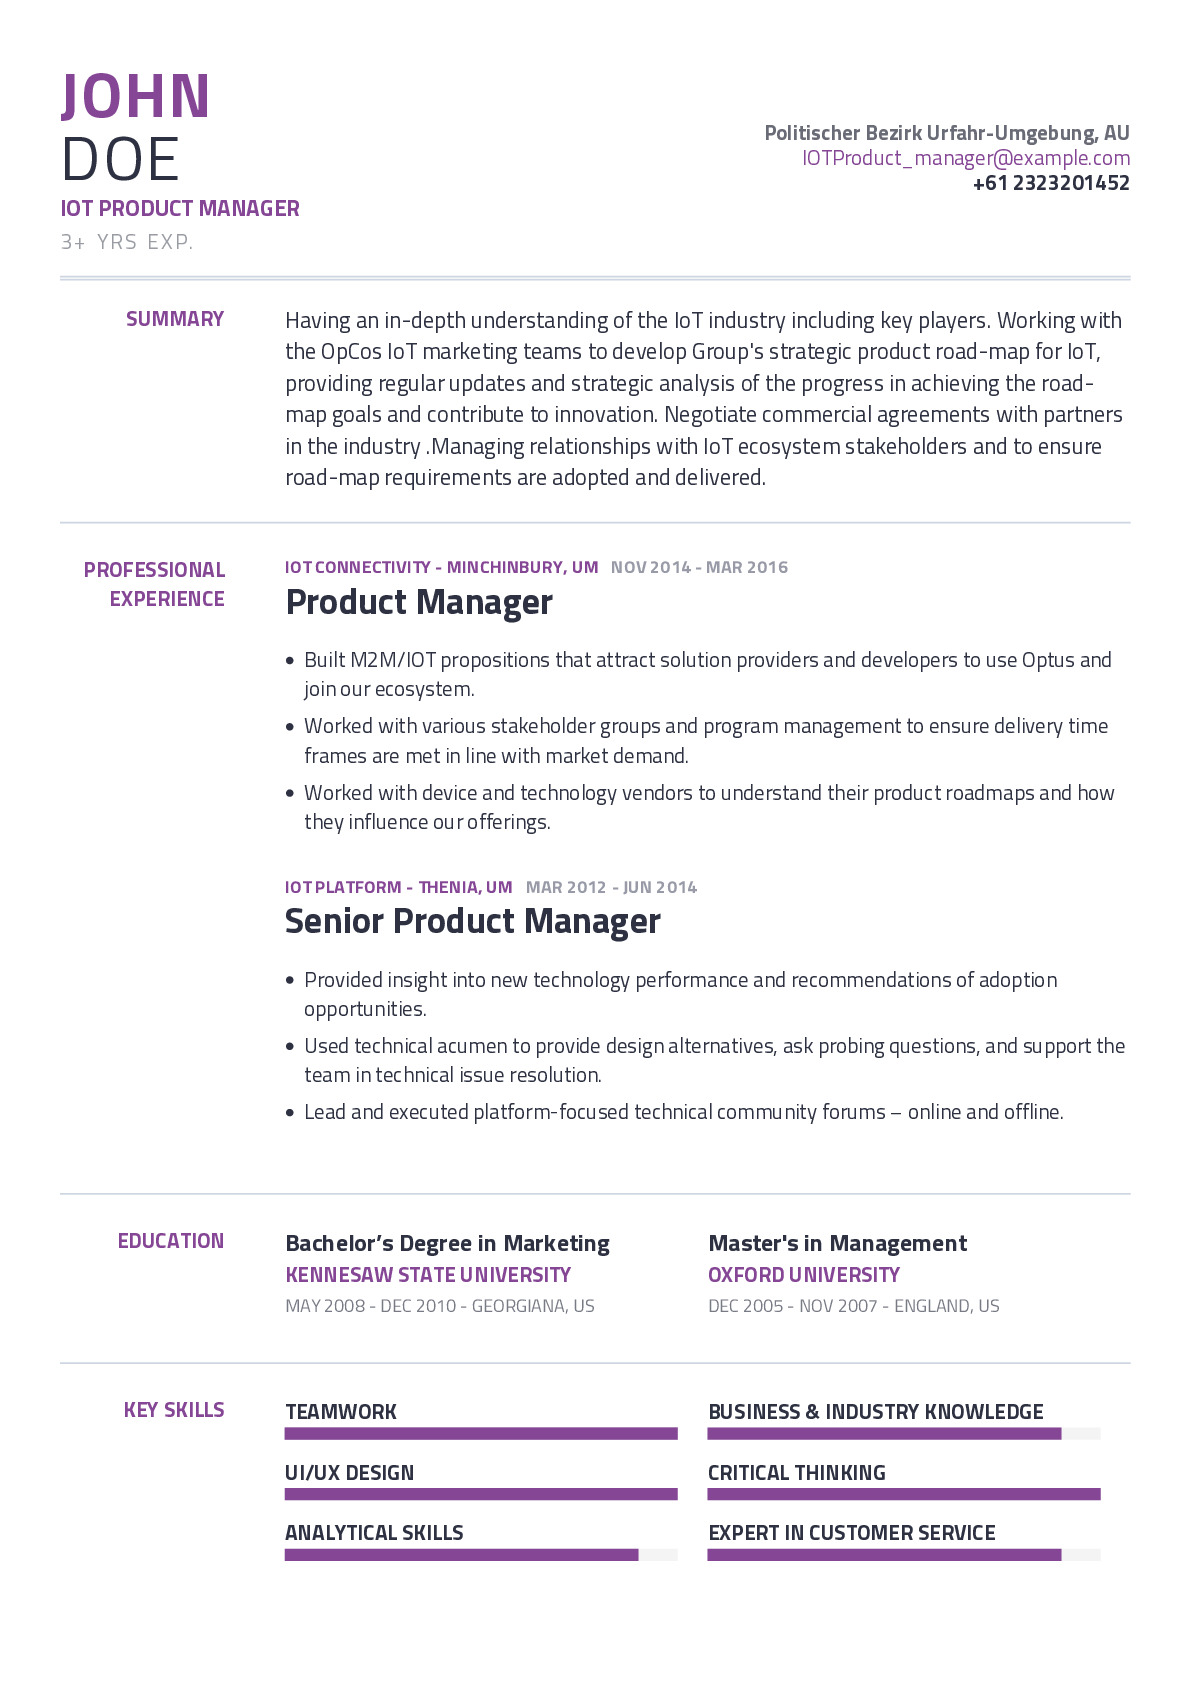 IOT Product Manager Resume Example